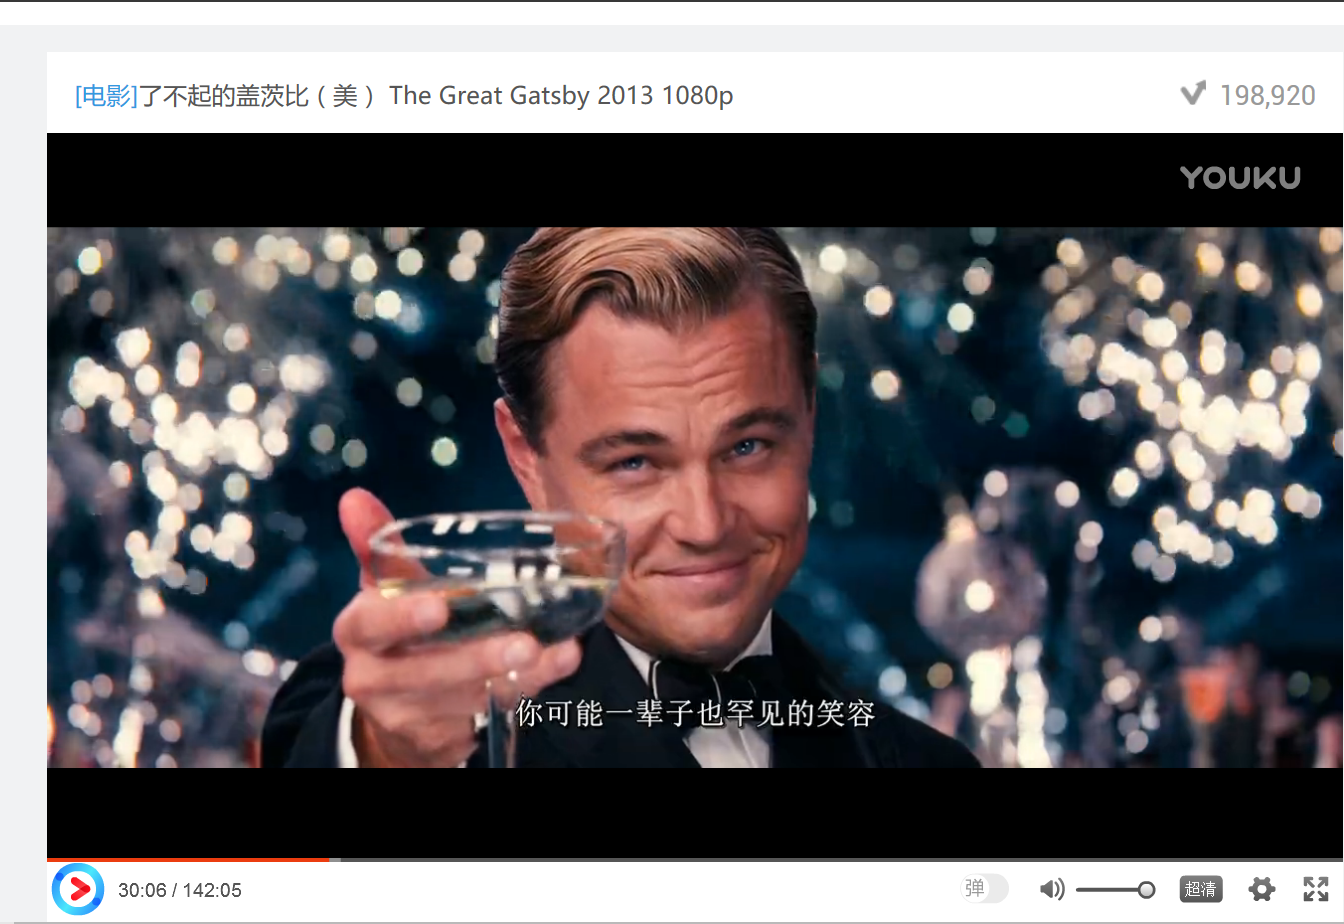 great gatsby movie vs book Read this full essay on the great gatsby book vs movie the great gatsby  movie vs book in his movie there were many details that remained loyal to the  book.